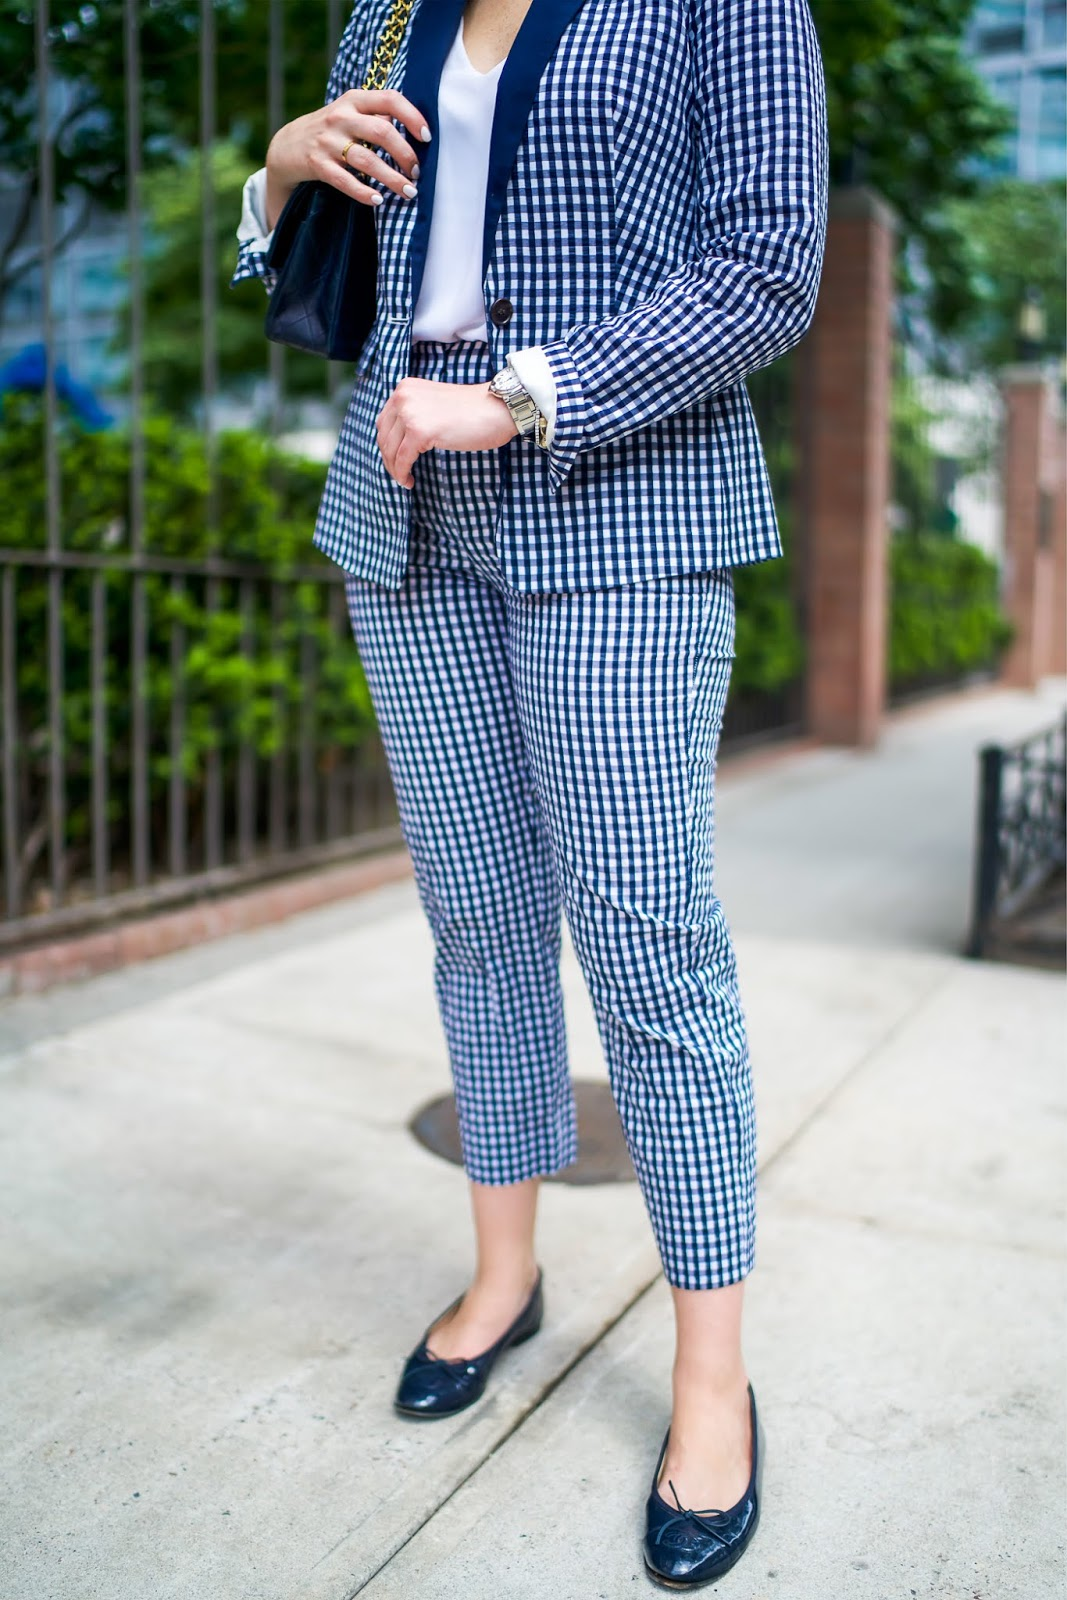 J.Crew Gingham Suit styled by popular New York style blogger, Covering the Bases